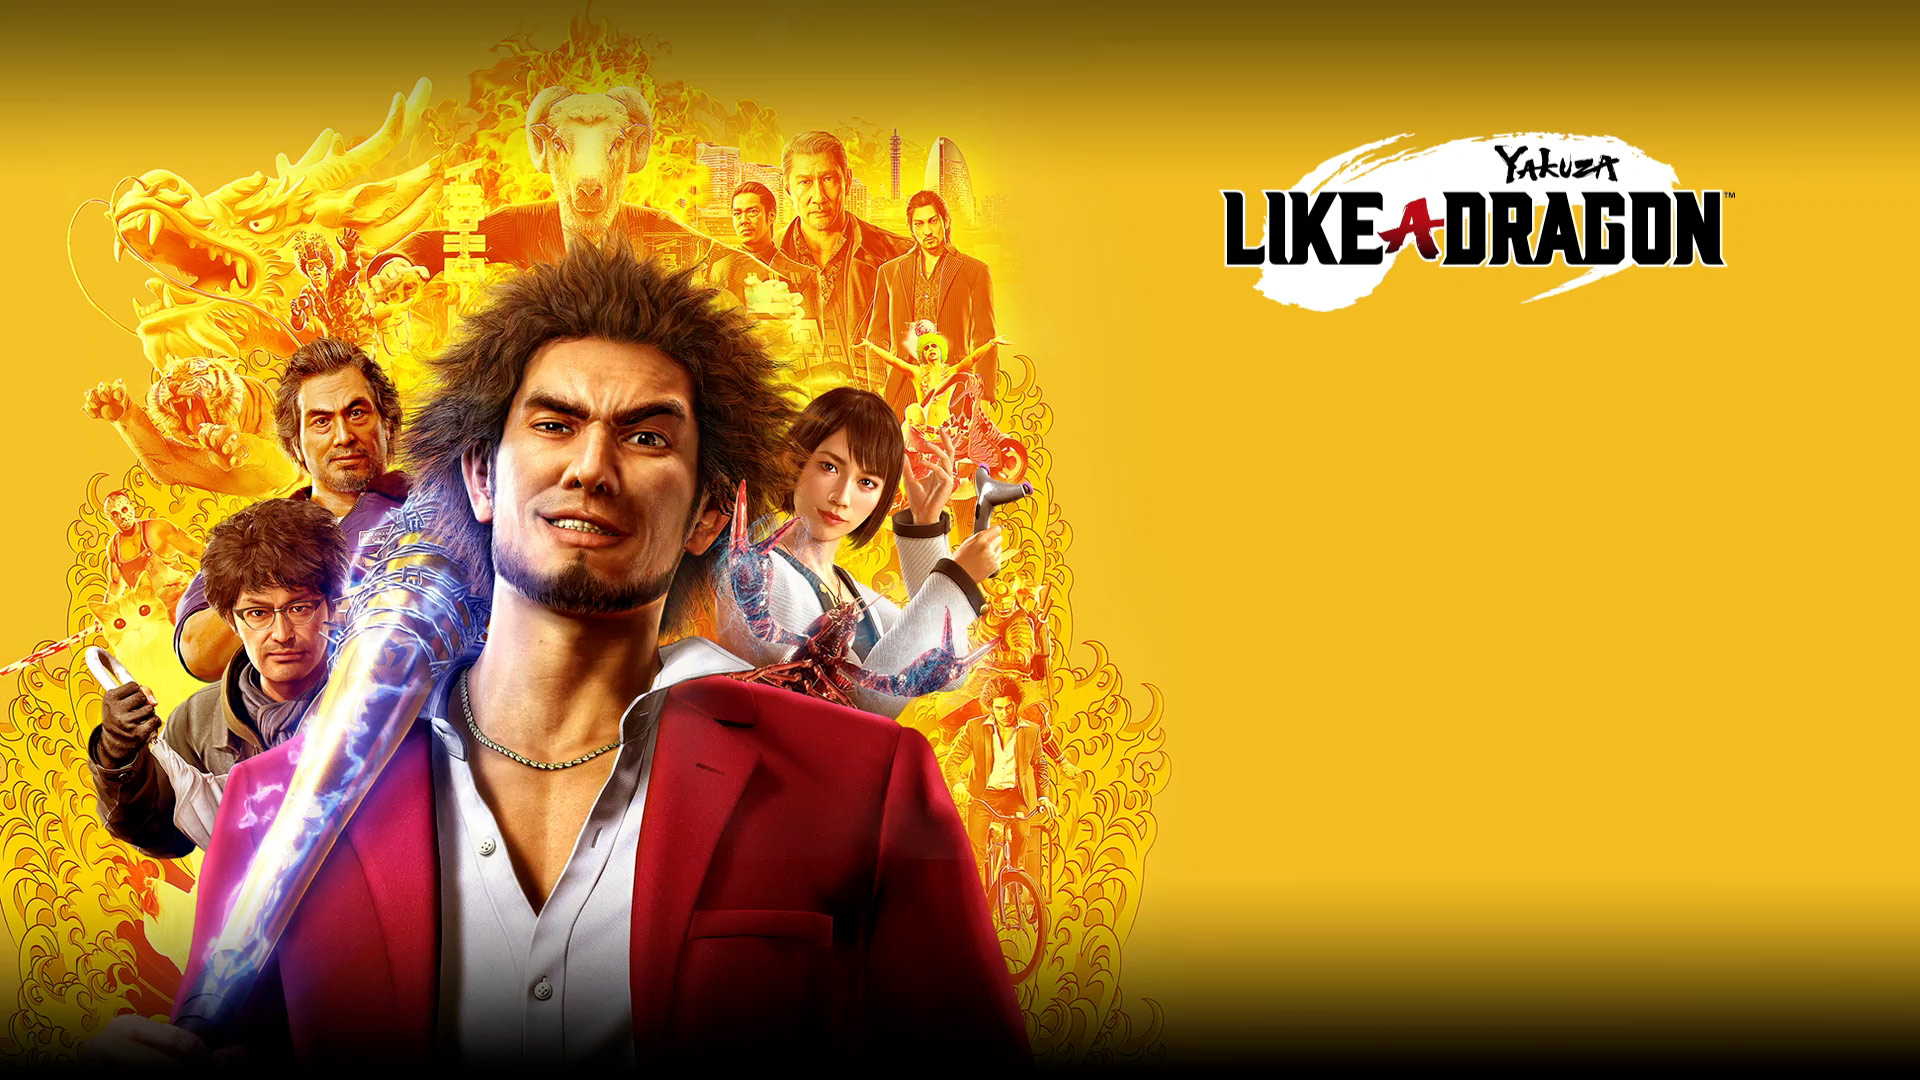 Yakuza Like a Dragon, Ichiban stands with an electrified bat, surrounded by characters from the game.